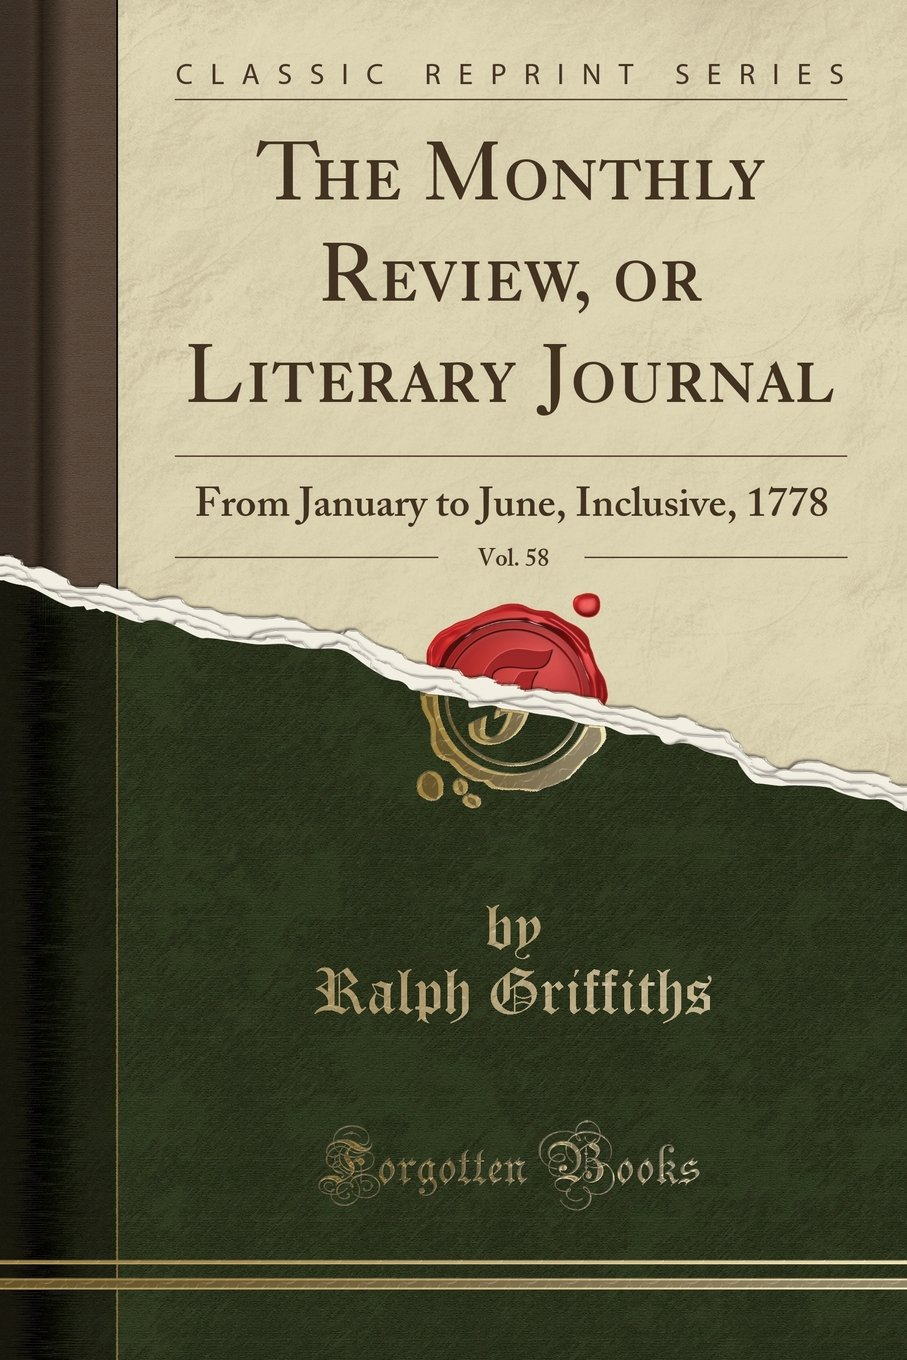 The Monthly Review, or Literary Journal, Vol. 58: From January to June, Inclusive, 1778 (Classic Reprint) pdf